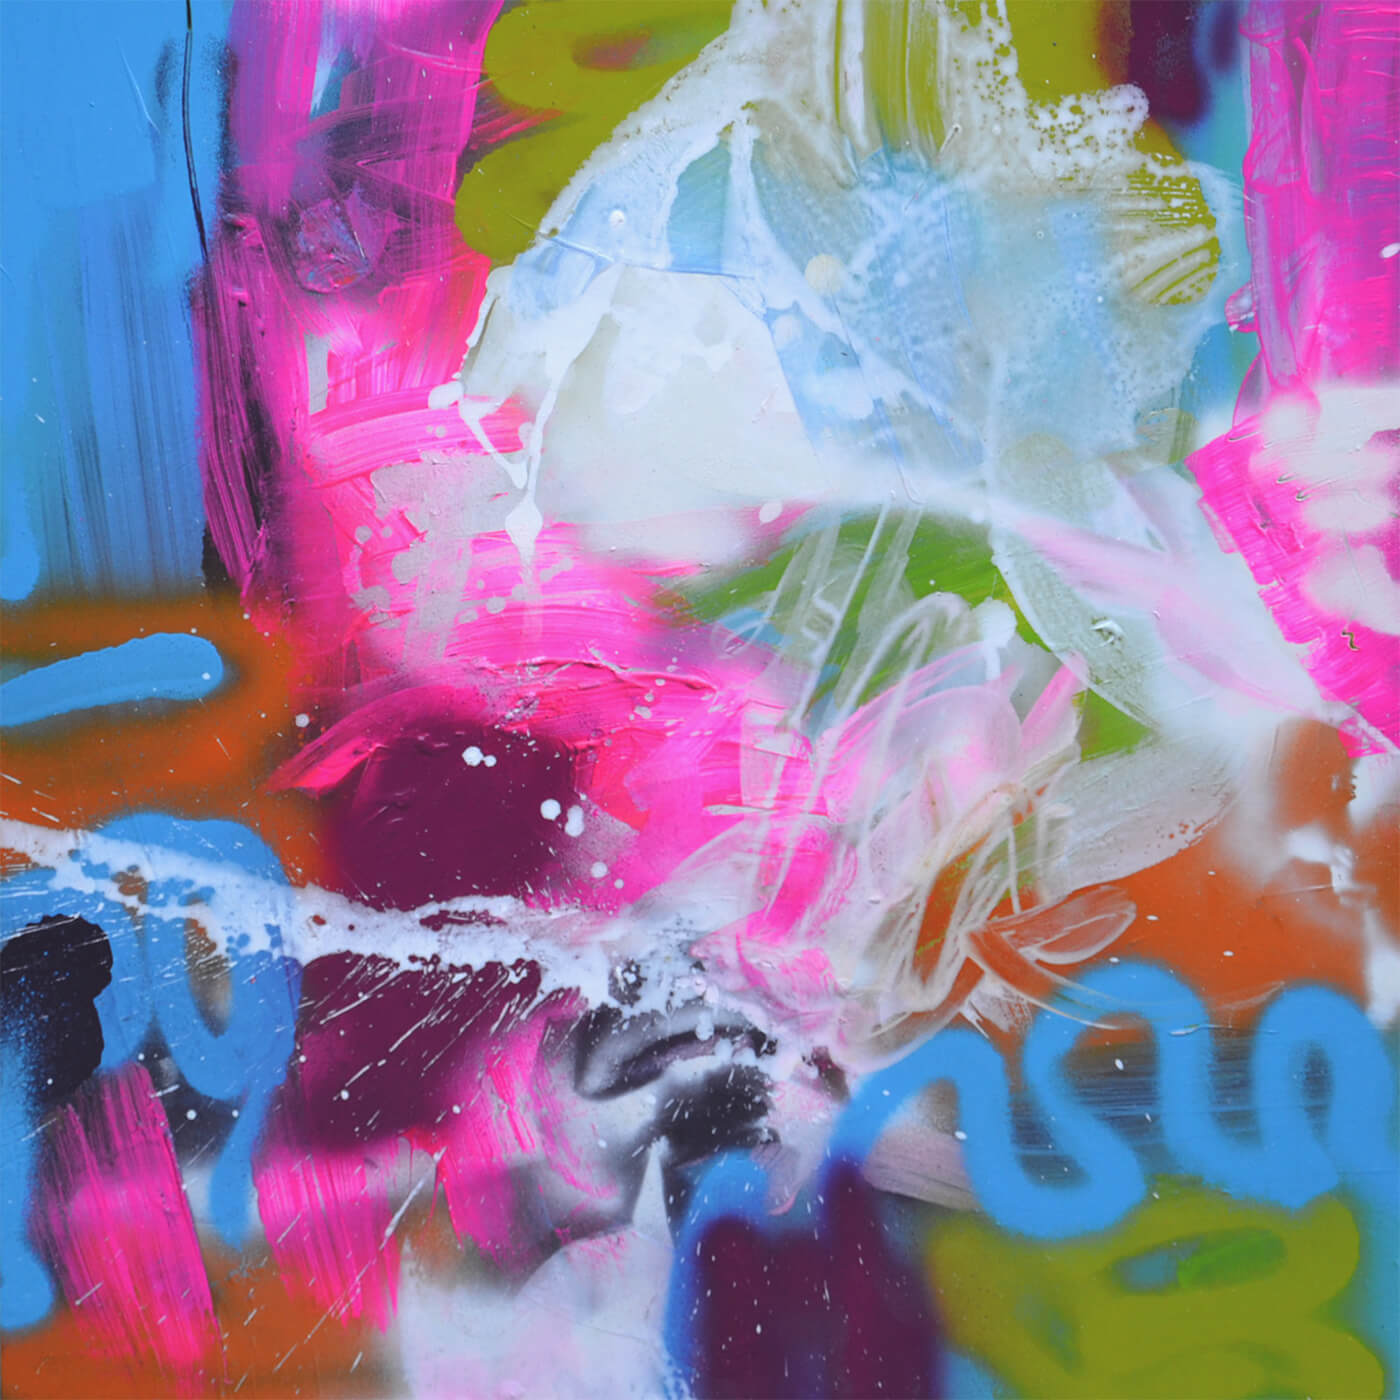 love turn around table Kunstwerk abstract expressive colourful